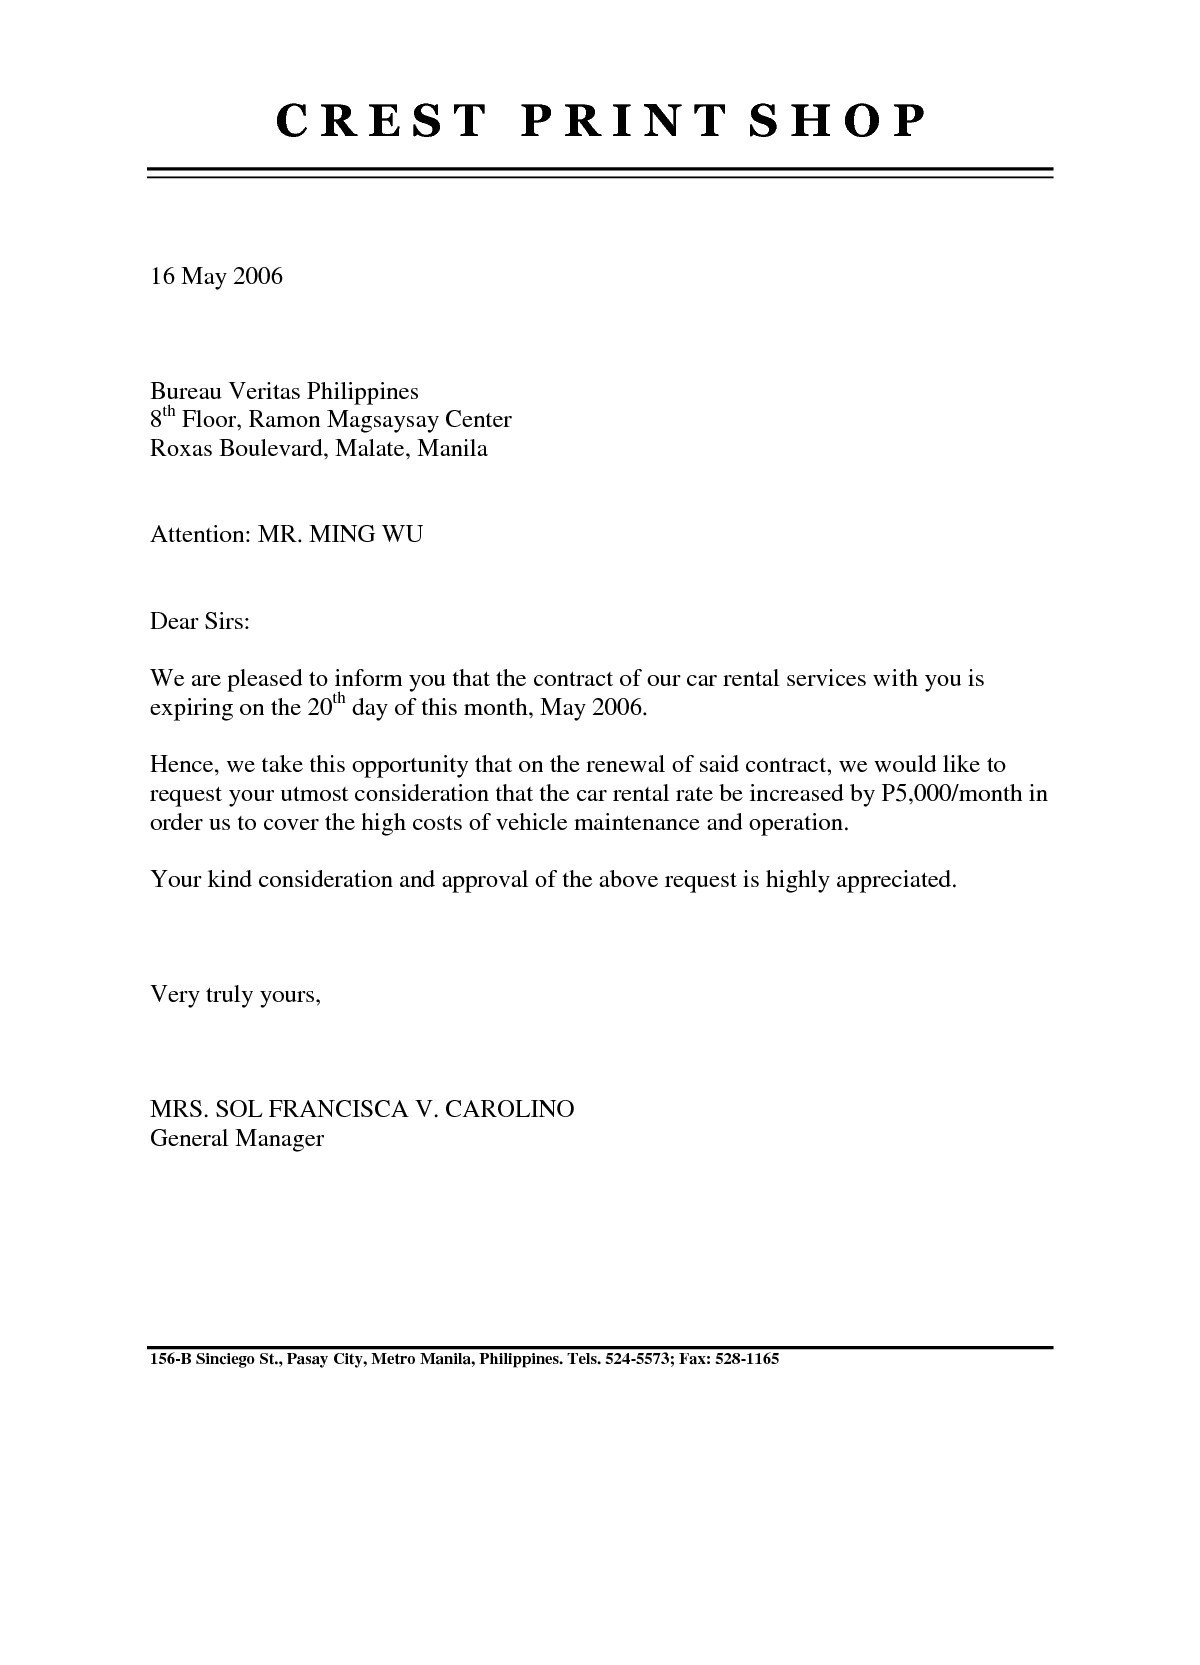 Rent Demand Letter Template - Tenancy Agreement Renewal Template